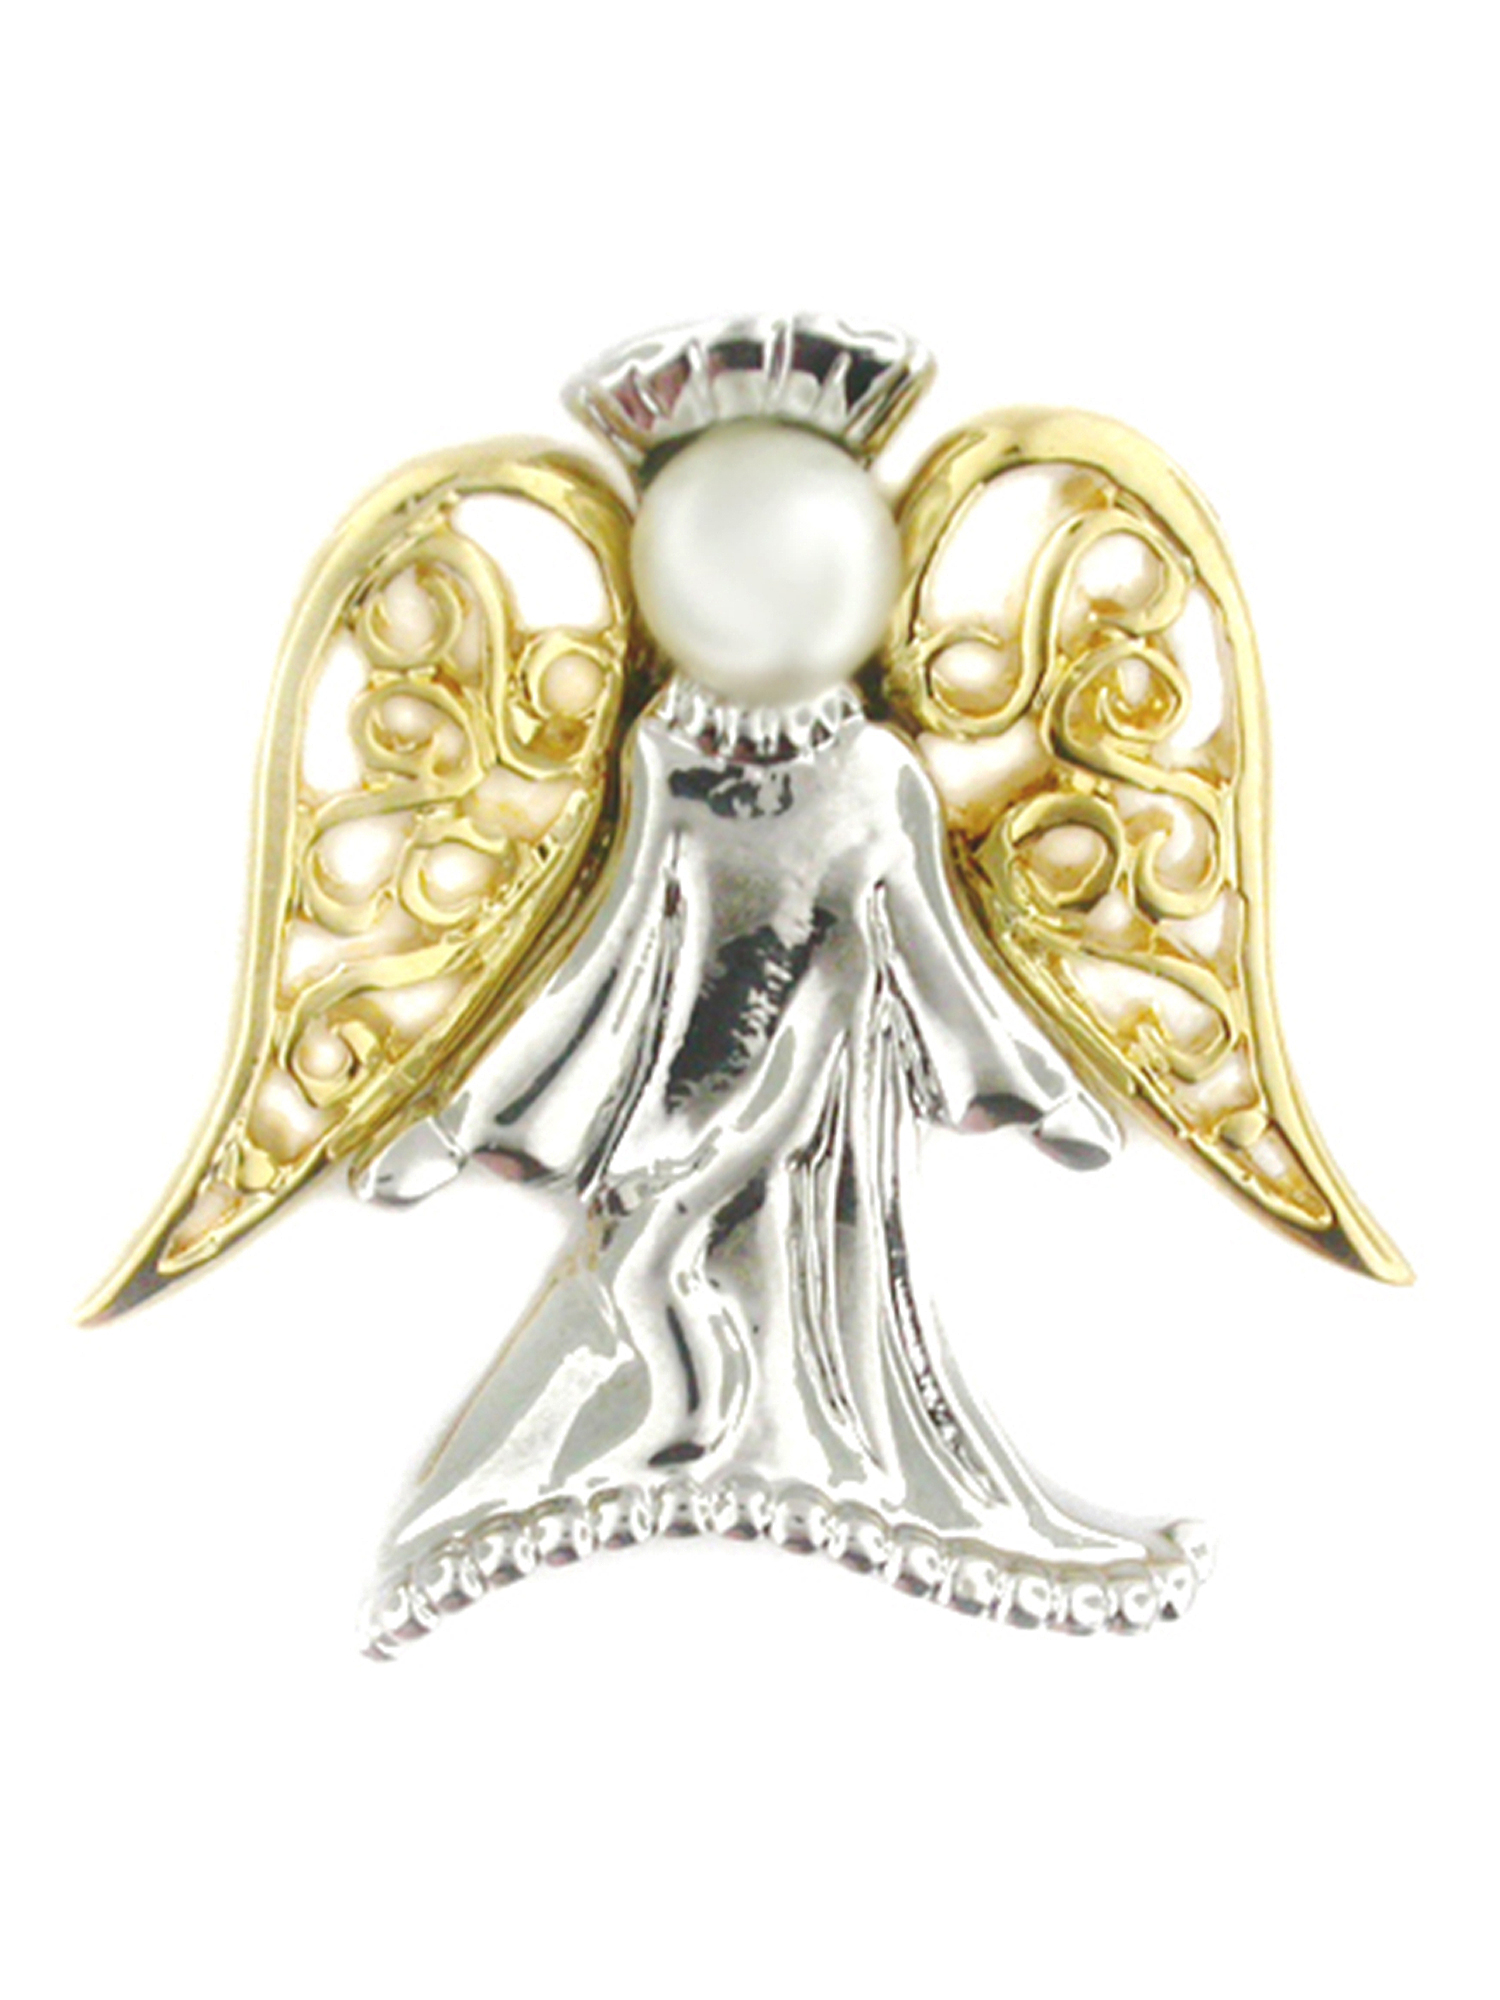 PinMart's Angel with Pearl Religious Spiritual Jewelry Brooch Style Lapel Pin 1""